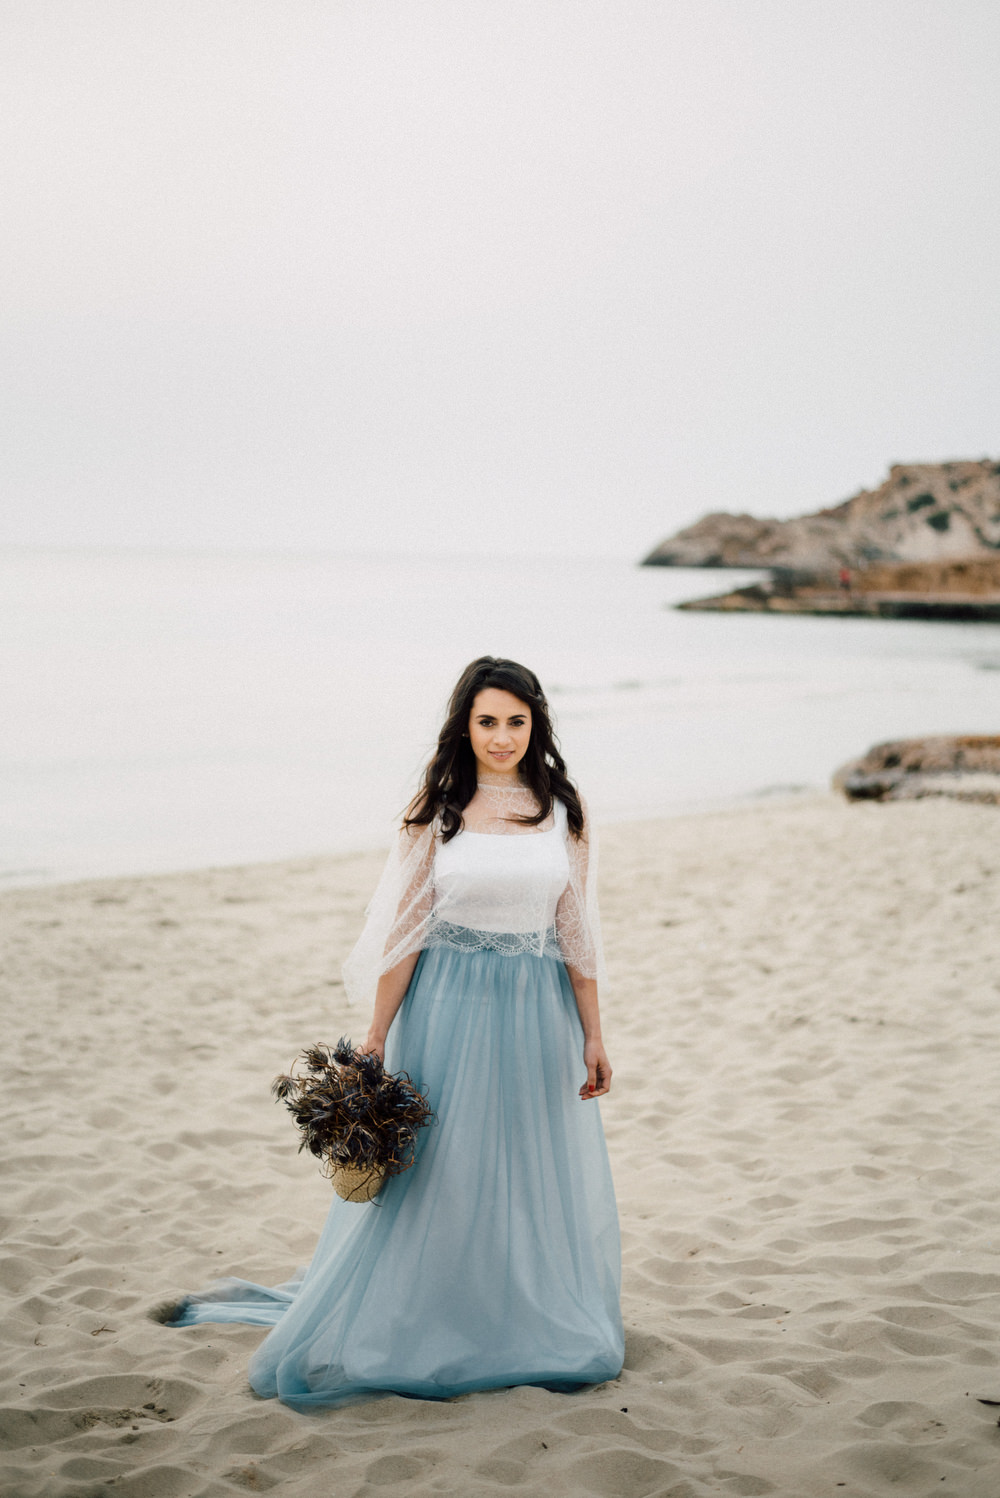 Outdoor Wild Nature Destination Spain Europe Coastal Styled Shoot Bride Blue Gown Lace | Blue Ibiza Elopement Ideas and Surprise Proposal Serena Genovese Photography